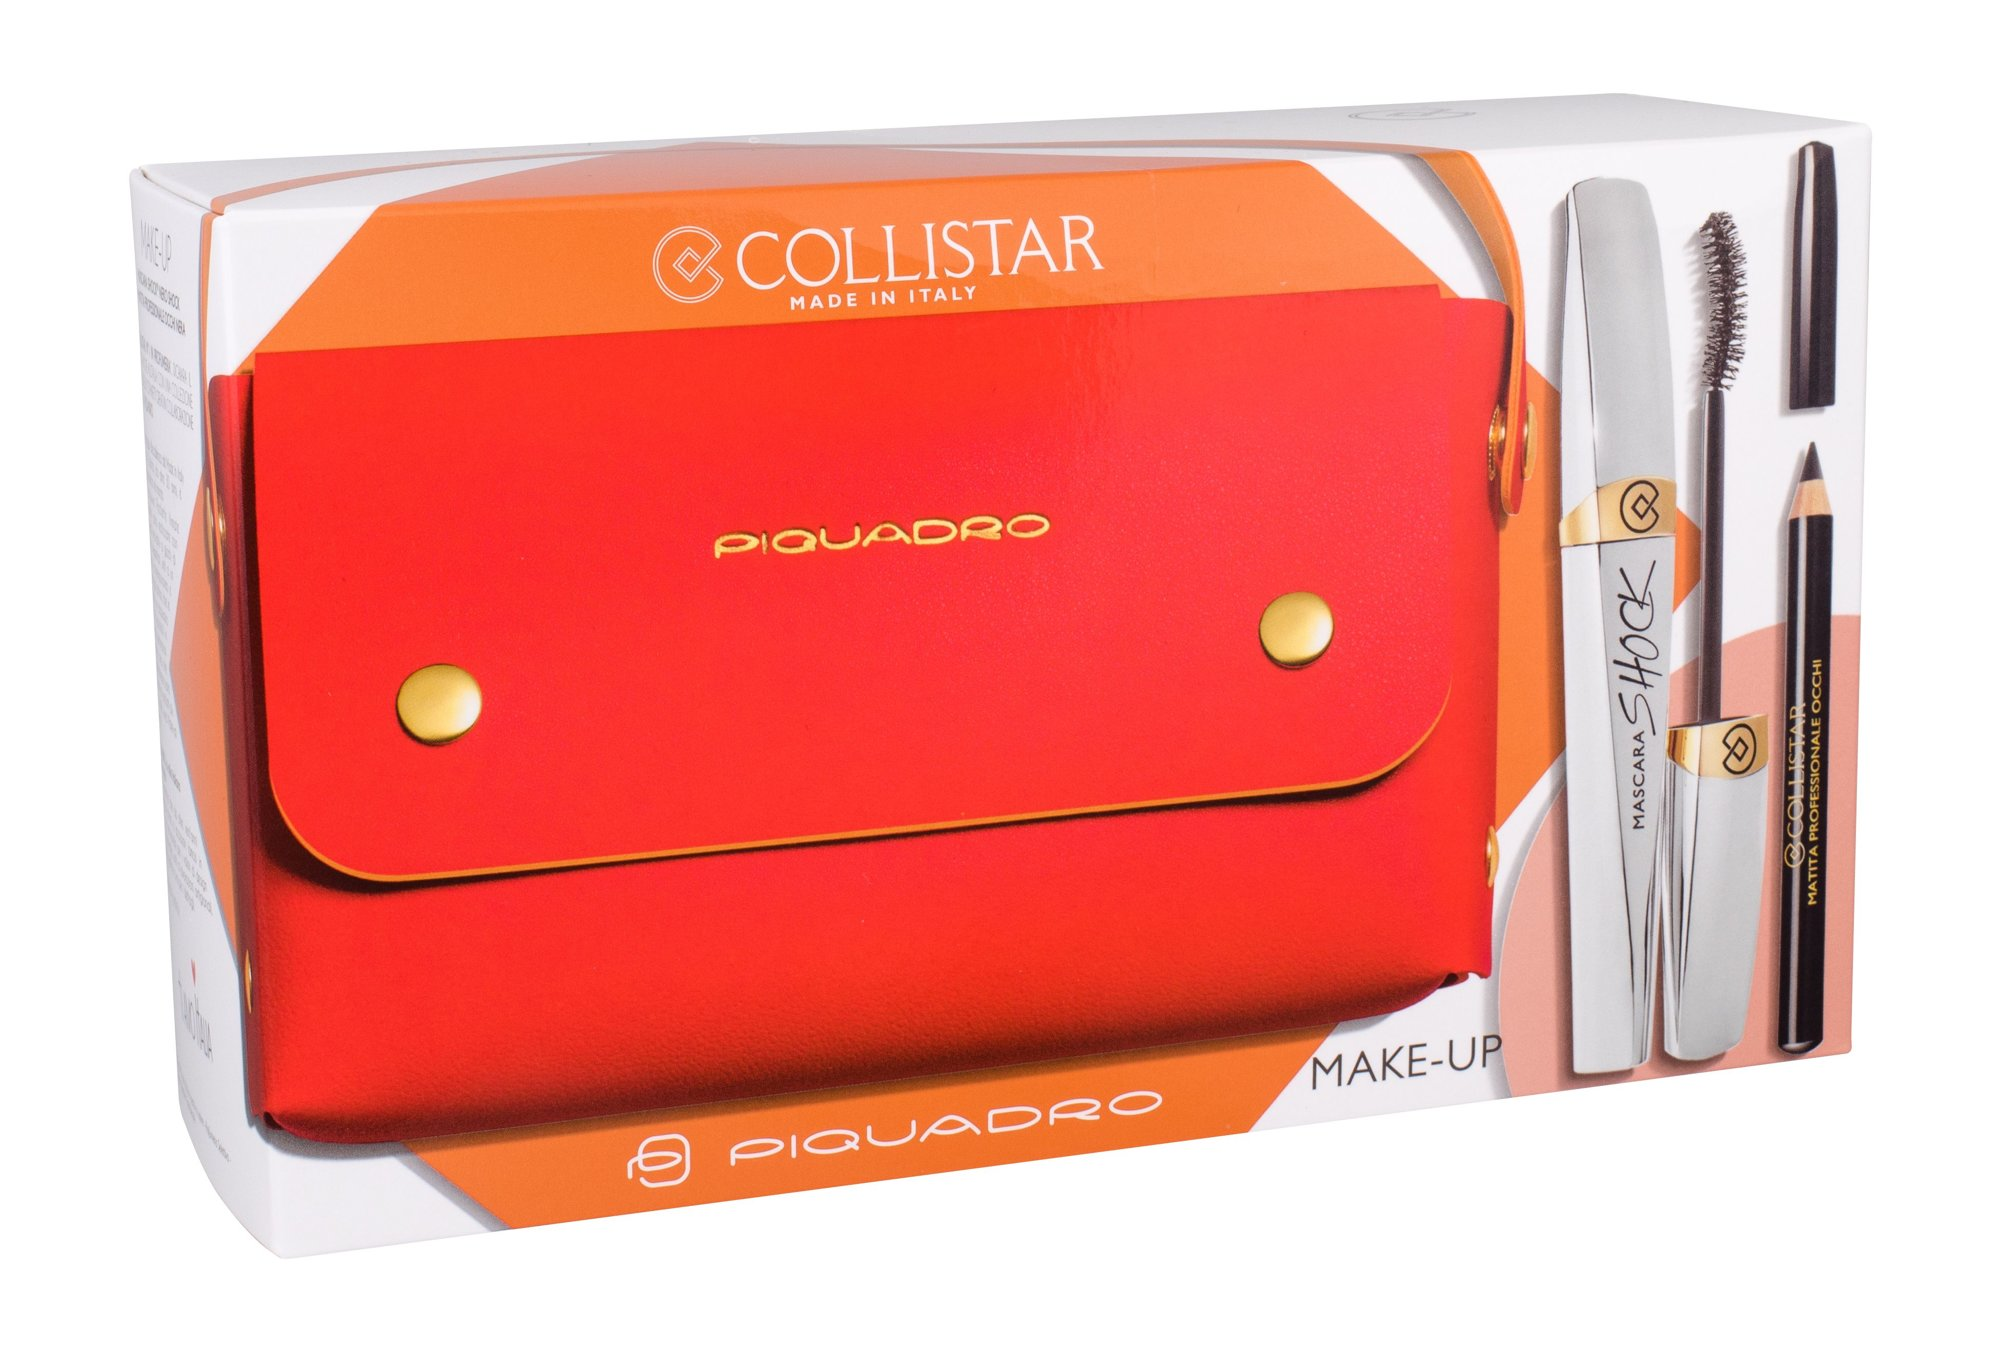 Collistar Mascara Shock Kit Cosmetic 8ml Black Shock